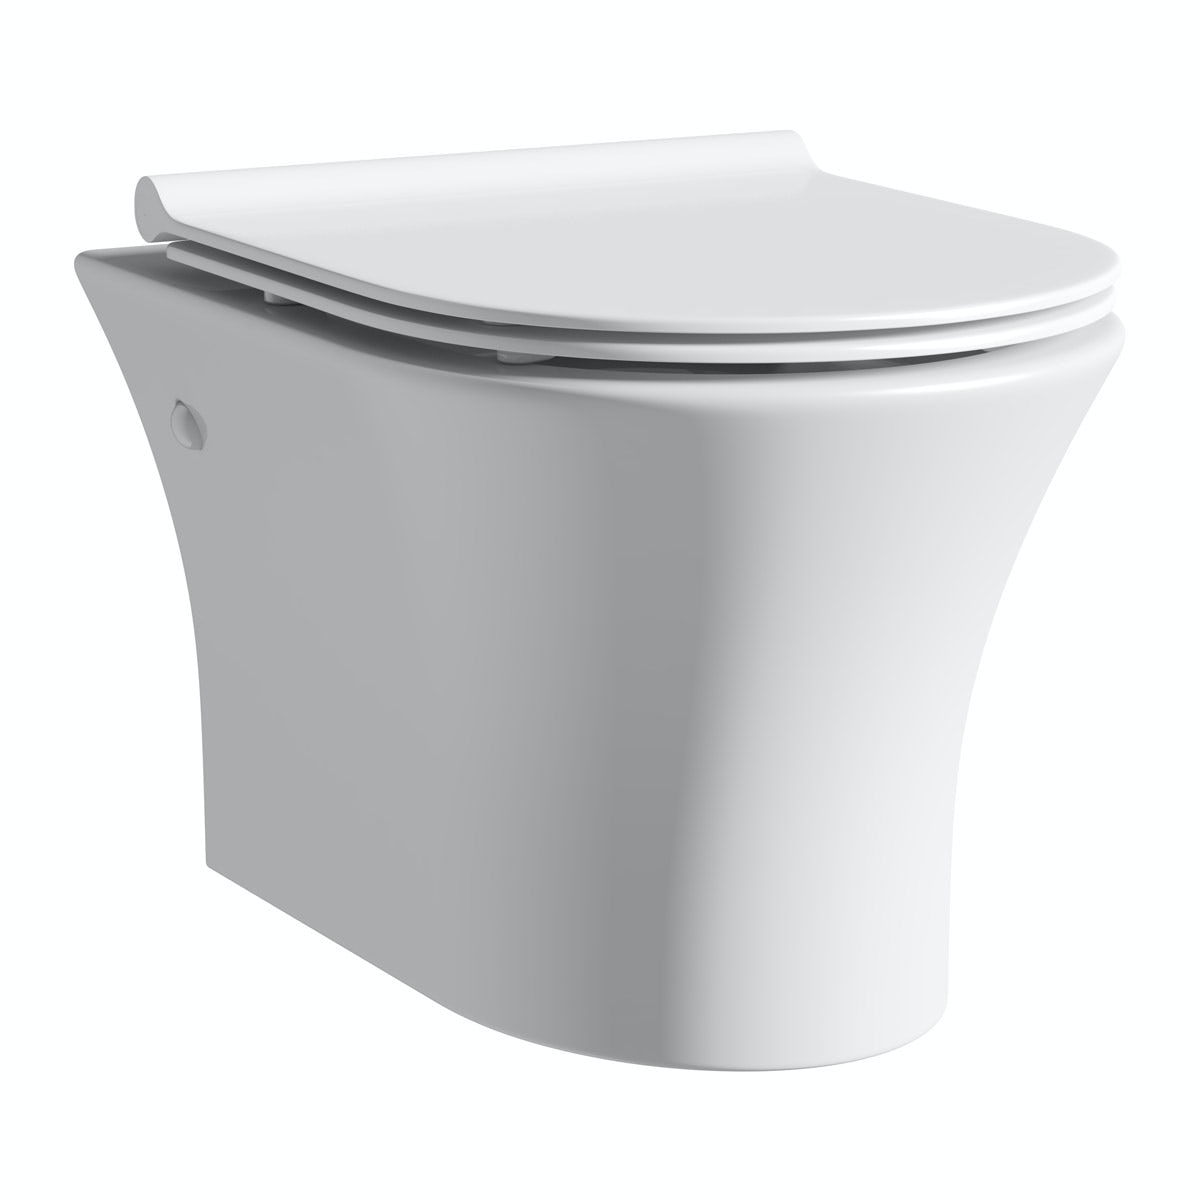 Mode Hardy rimless wall hung toilet with slimline soft close seat